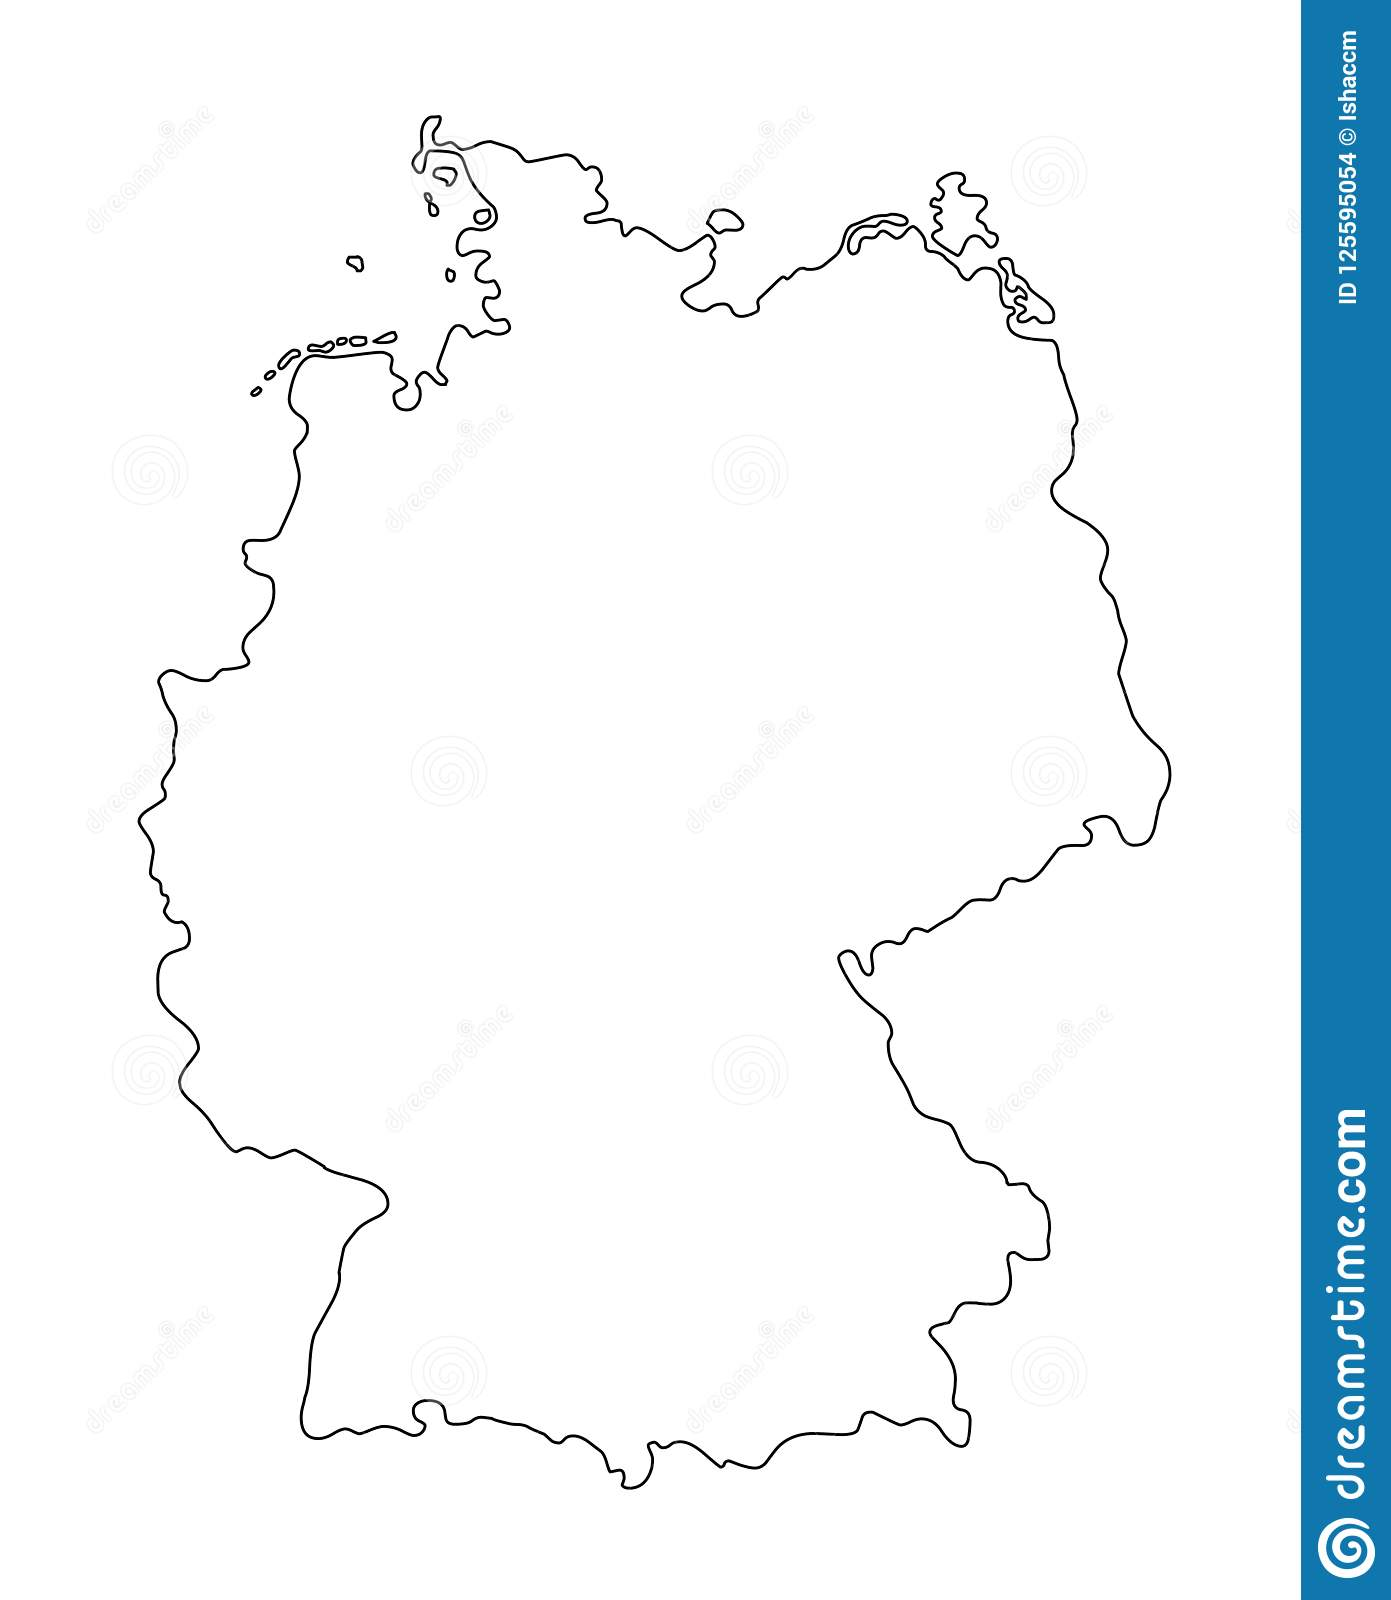 Outline Map Of Germany.Germany Outline Map Vector Illustration Stock Vector Illustration